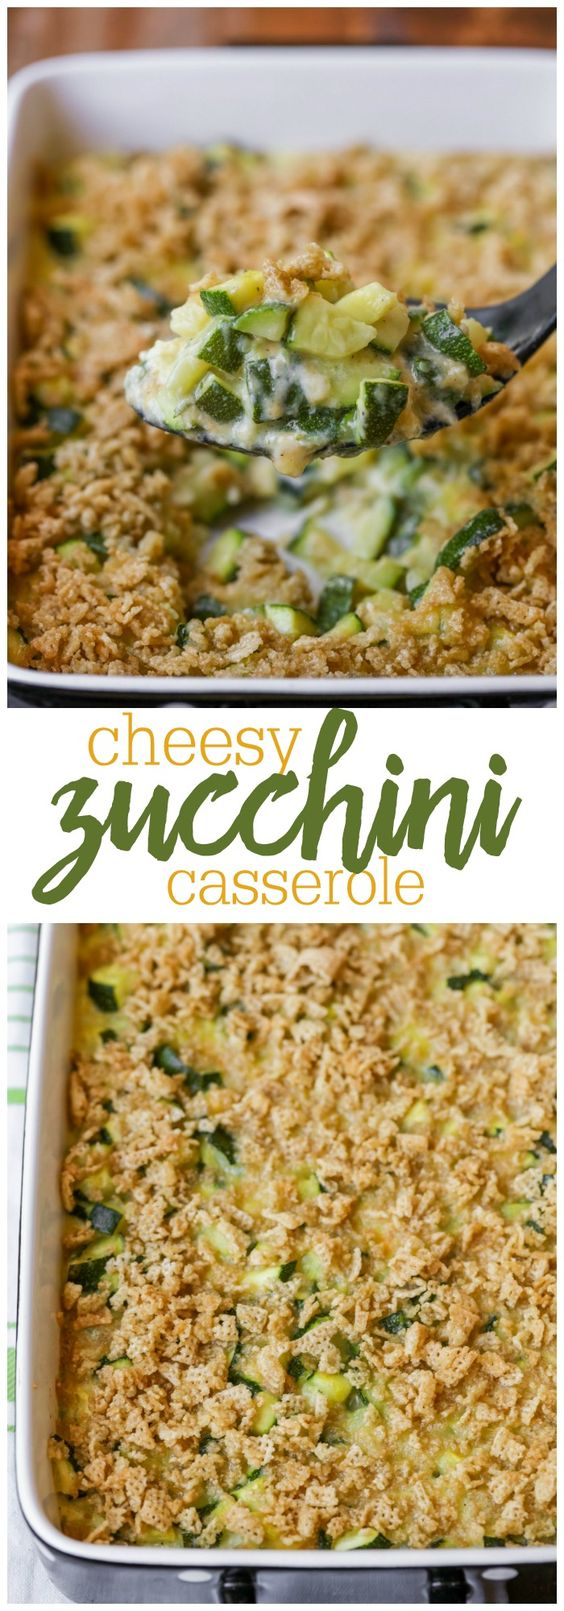 Cheesy Zucchini Casserole Vegetable Side Dish Recipe via lil' luna - a simple and delicious side dish made with zucchini pieces, cheese, butter and crushed Chex! It's so good!